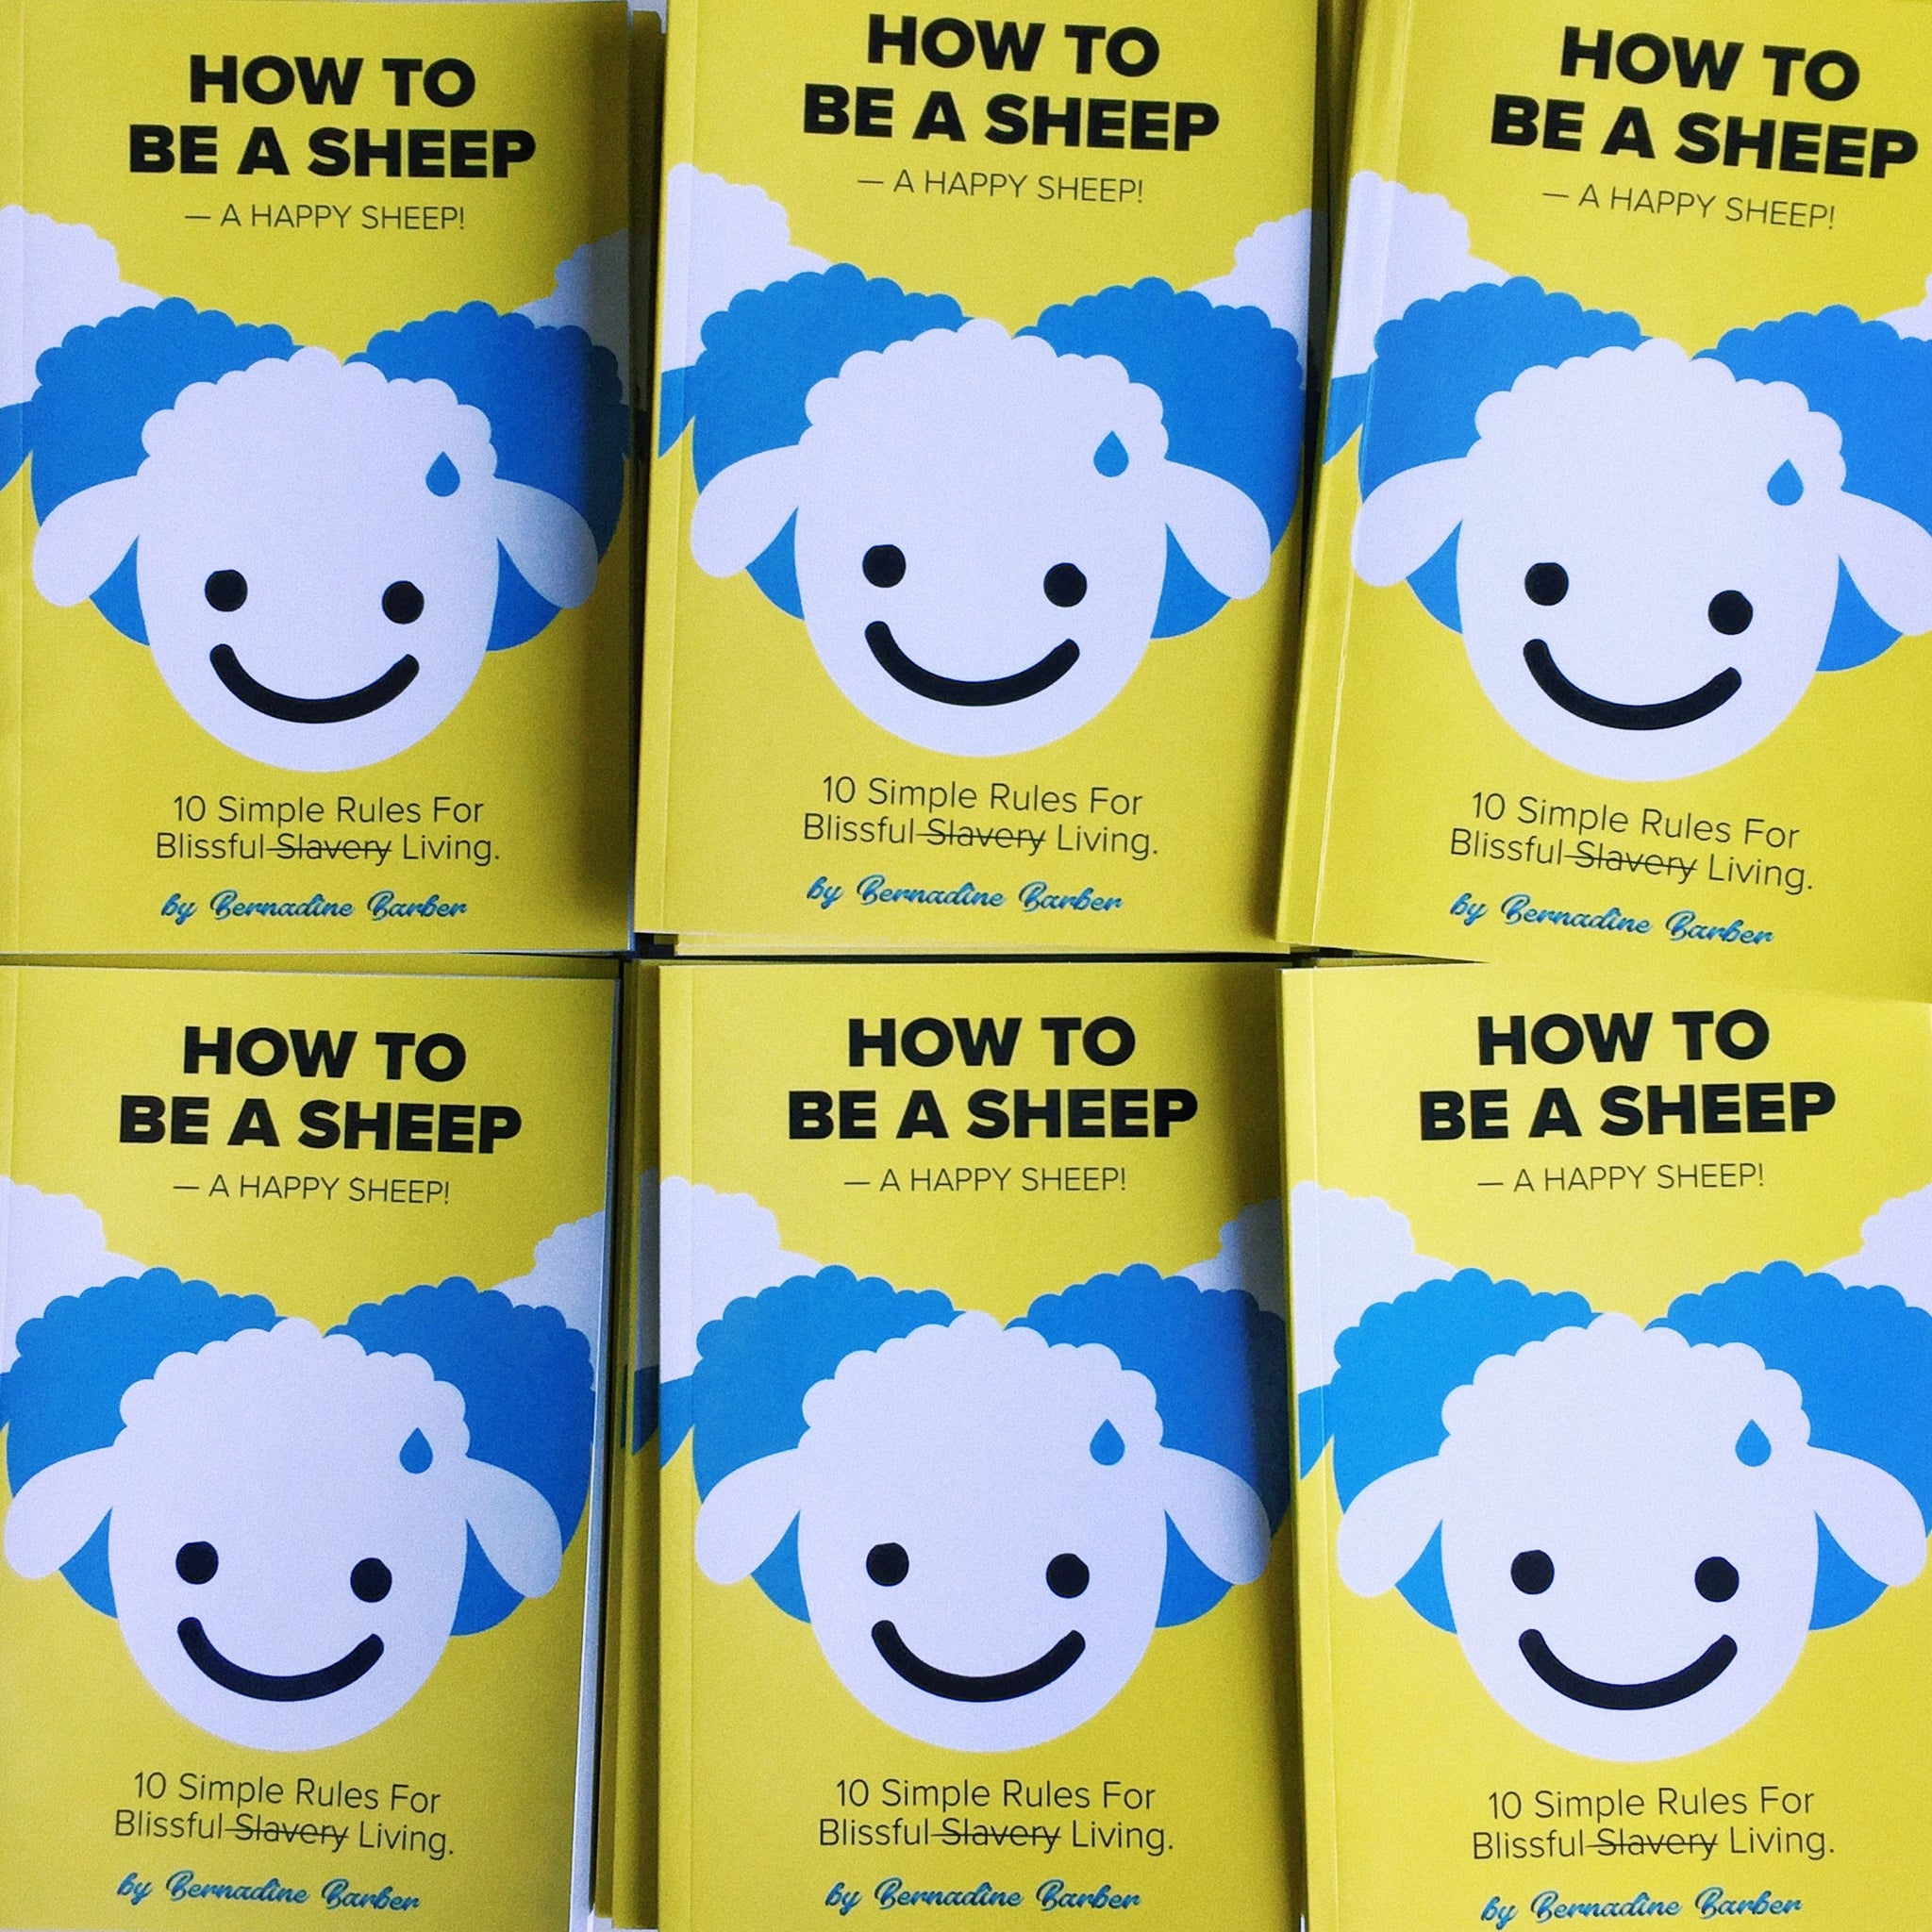 How To Be A Sheep –A Happy Sheep!